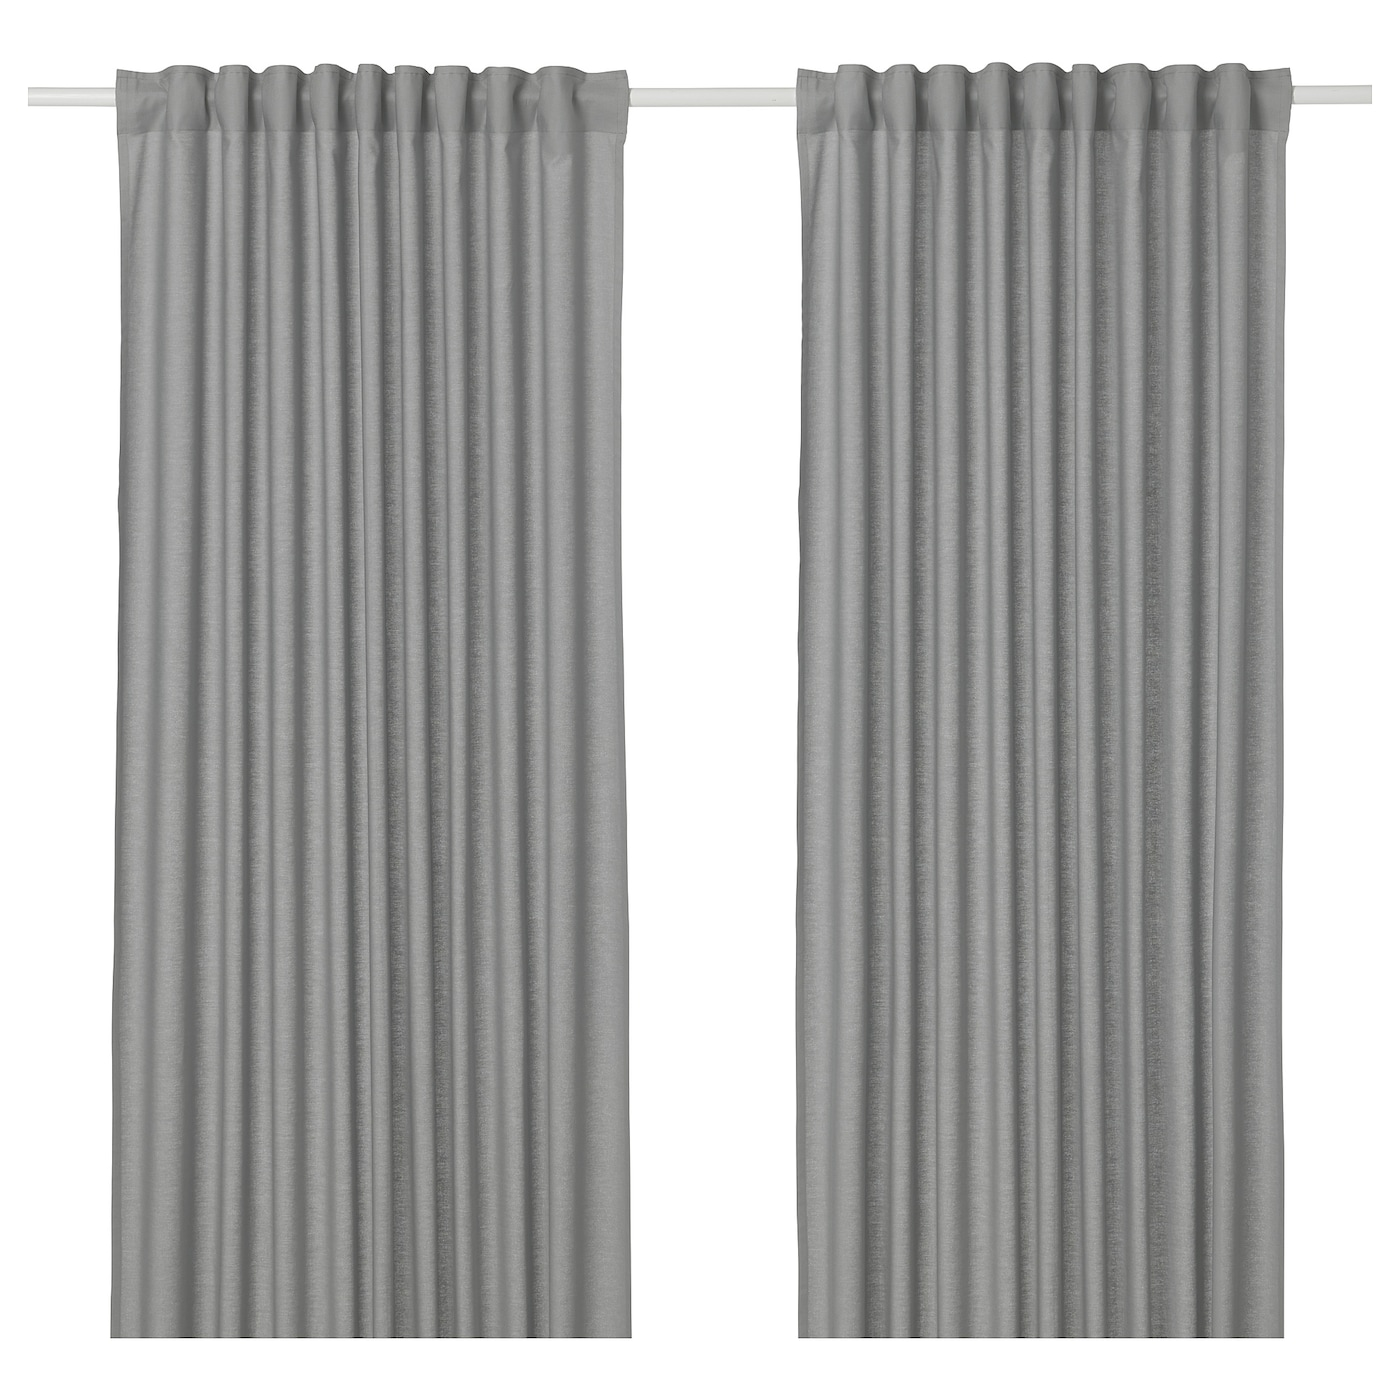 IKEA ANNALOUISA curtains, 1 pair The curtains can be used on a curtain rod or a curtain track.